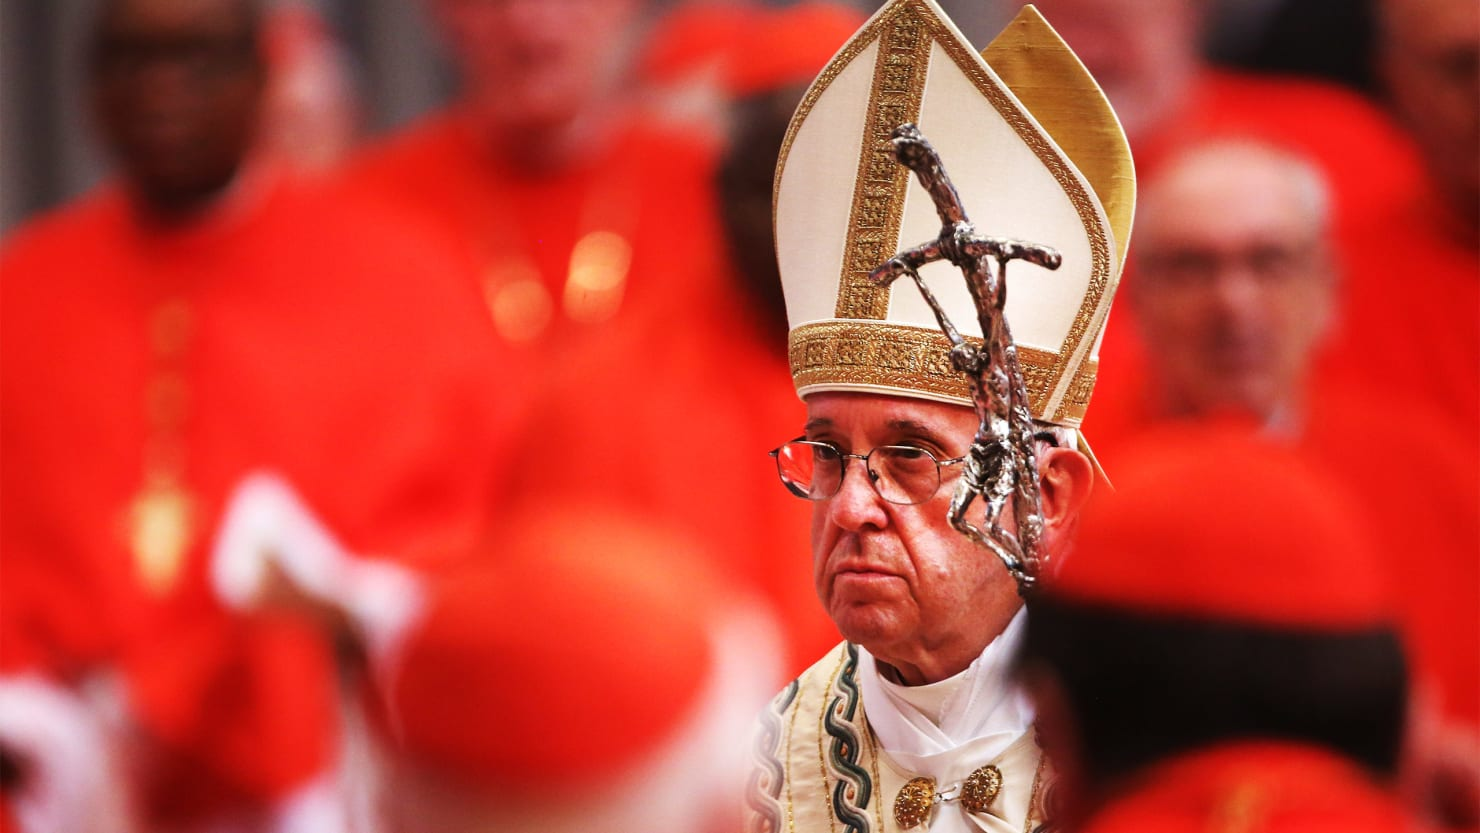 Pope Francis surrounded by cardinals leads a consistory at St. Peter's Basilica in Vatican City